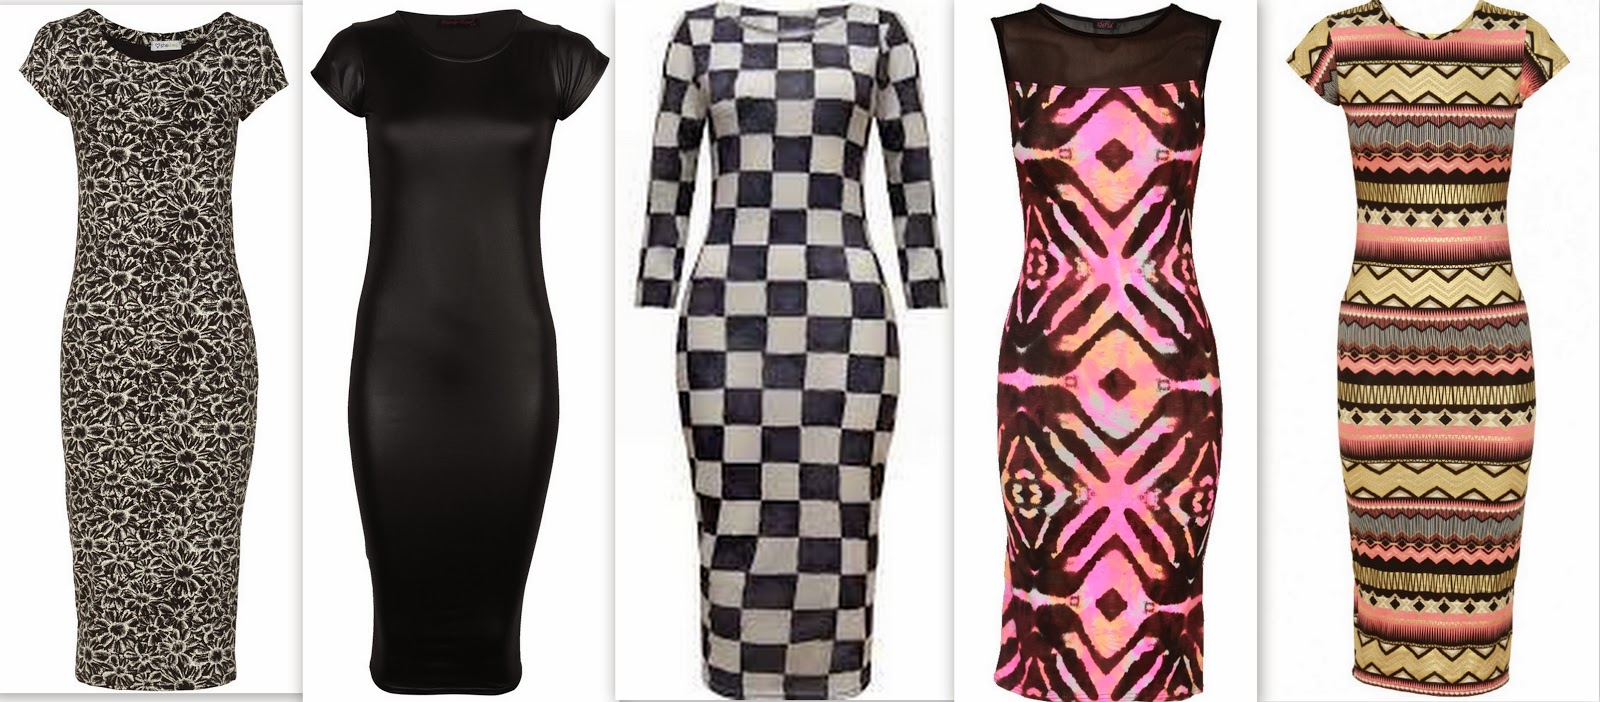 fitted midi dresses, black midi dress, printed midi dress, midi dress with cup sleeves,